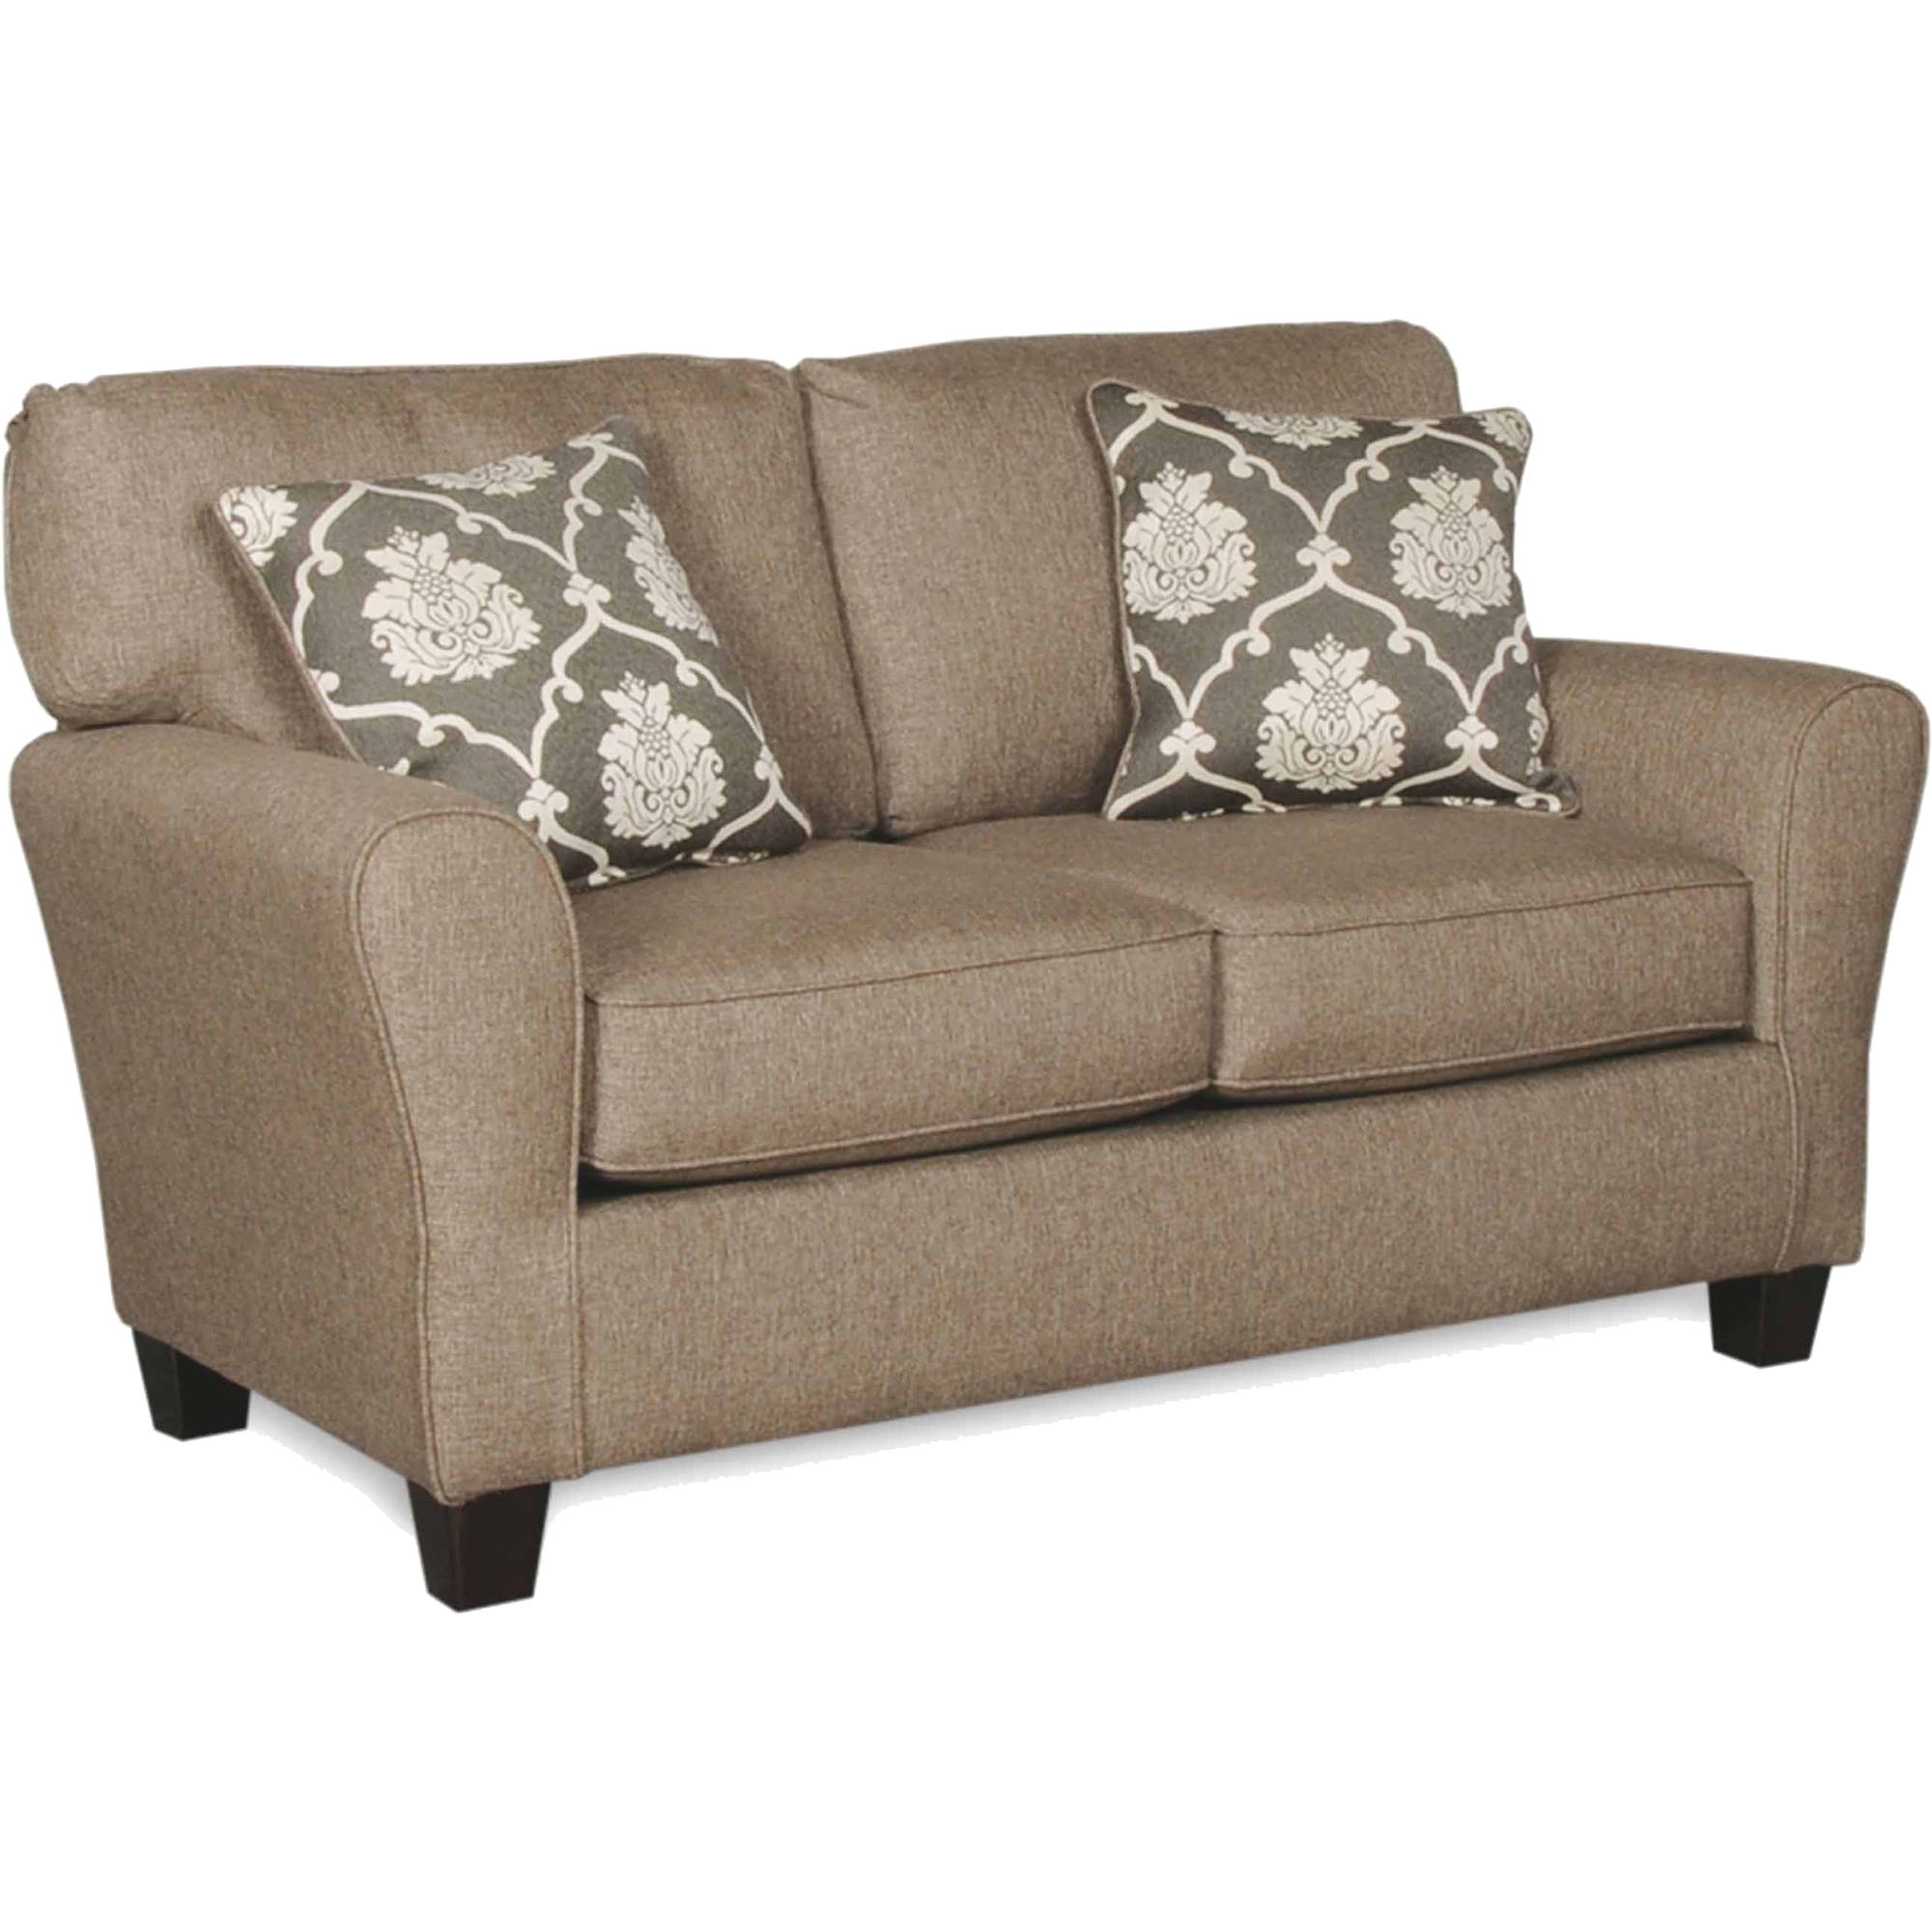 SoFab Aubrey Grande Brown with Light Grey Love Seat with 2 Reversible Accent Pillows